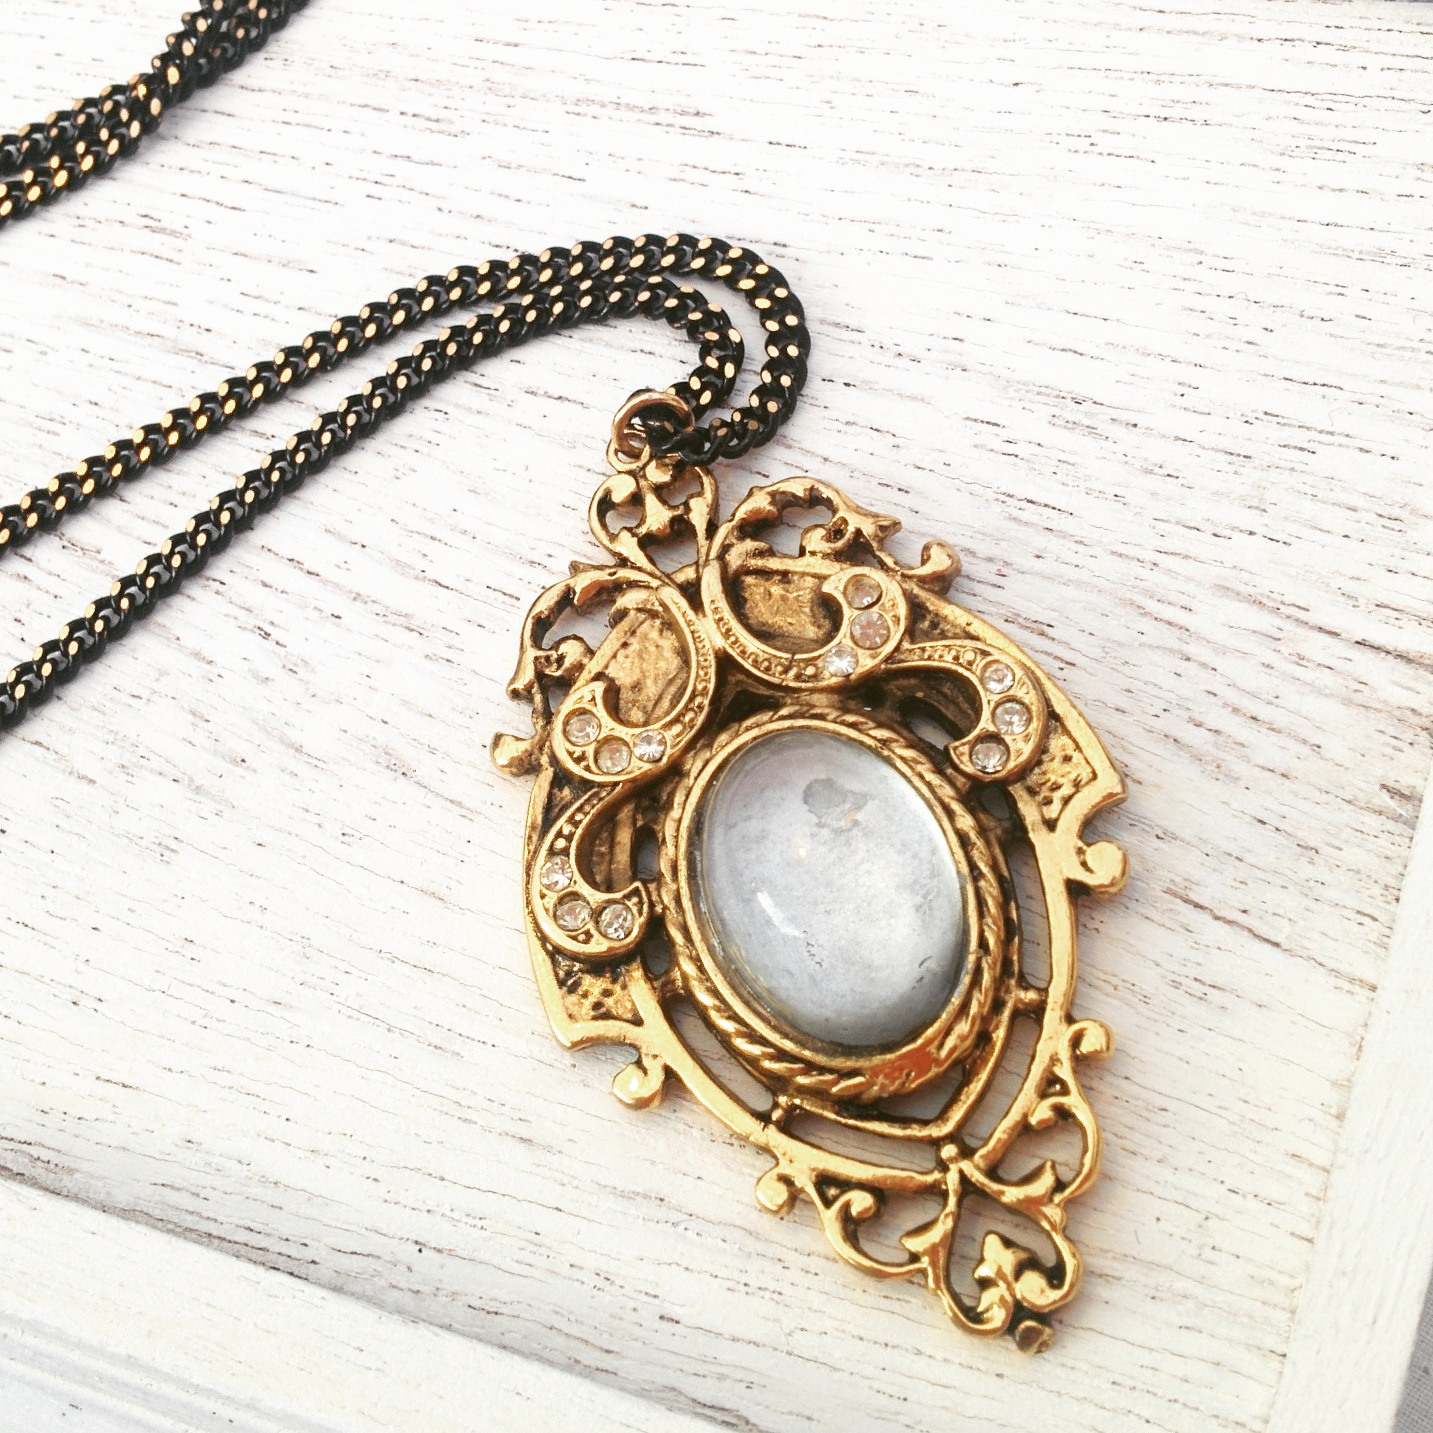 The pendant to end all pendants! This incredibly detailed beauty was removed from a vintage brooch and converted to this beautiful golden black chain. This one almost didn't make it out of the studio, i'm in love with it!